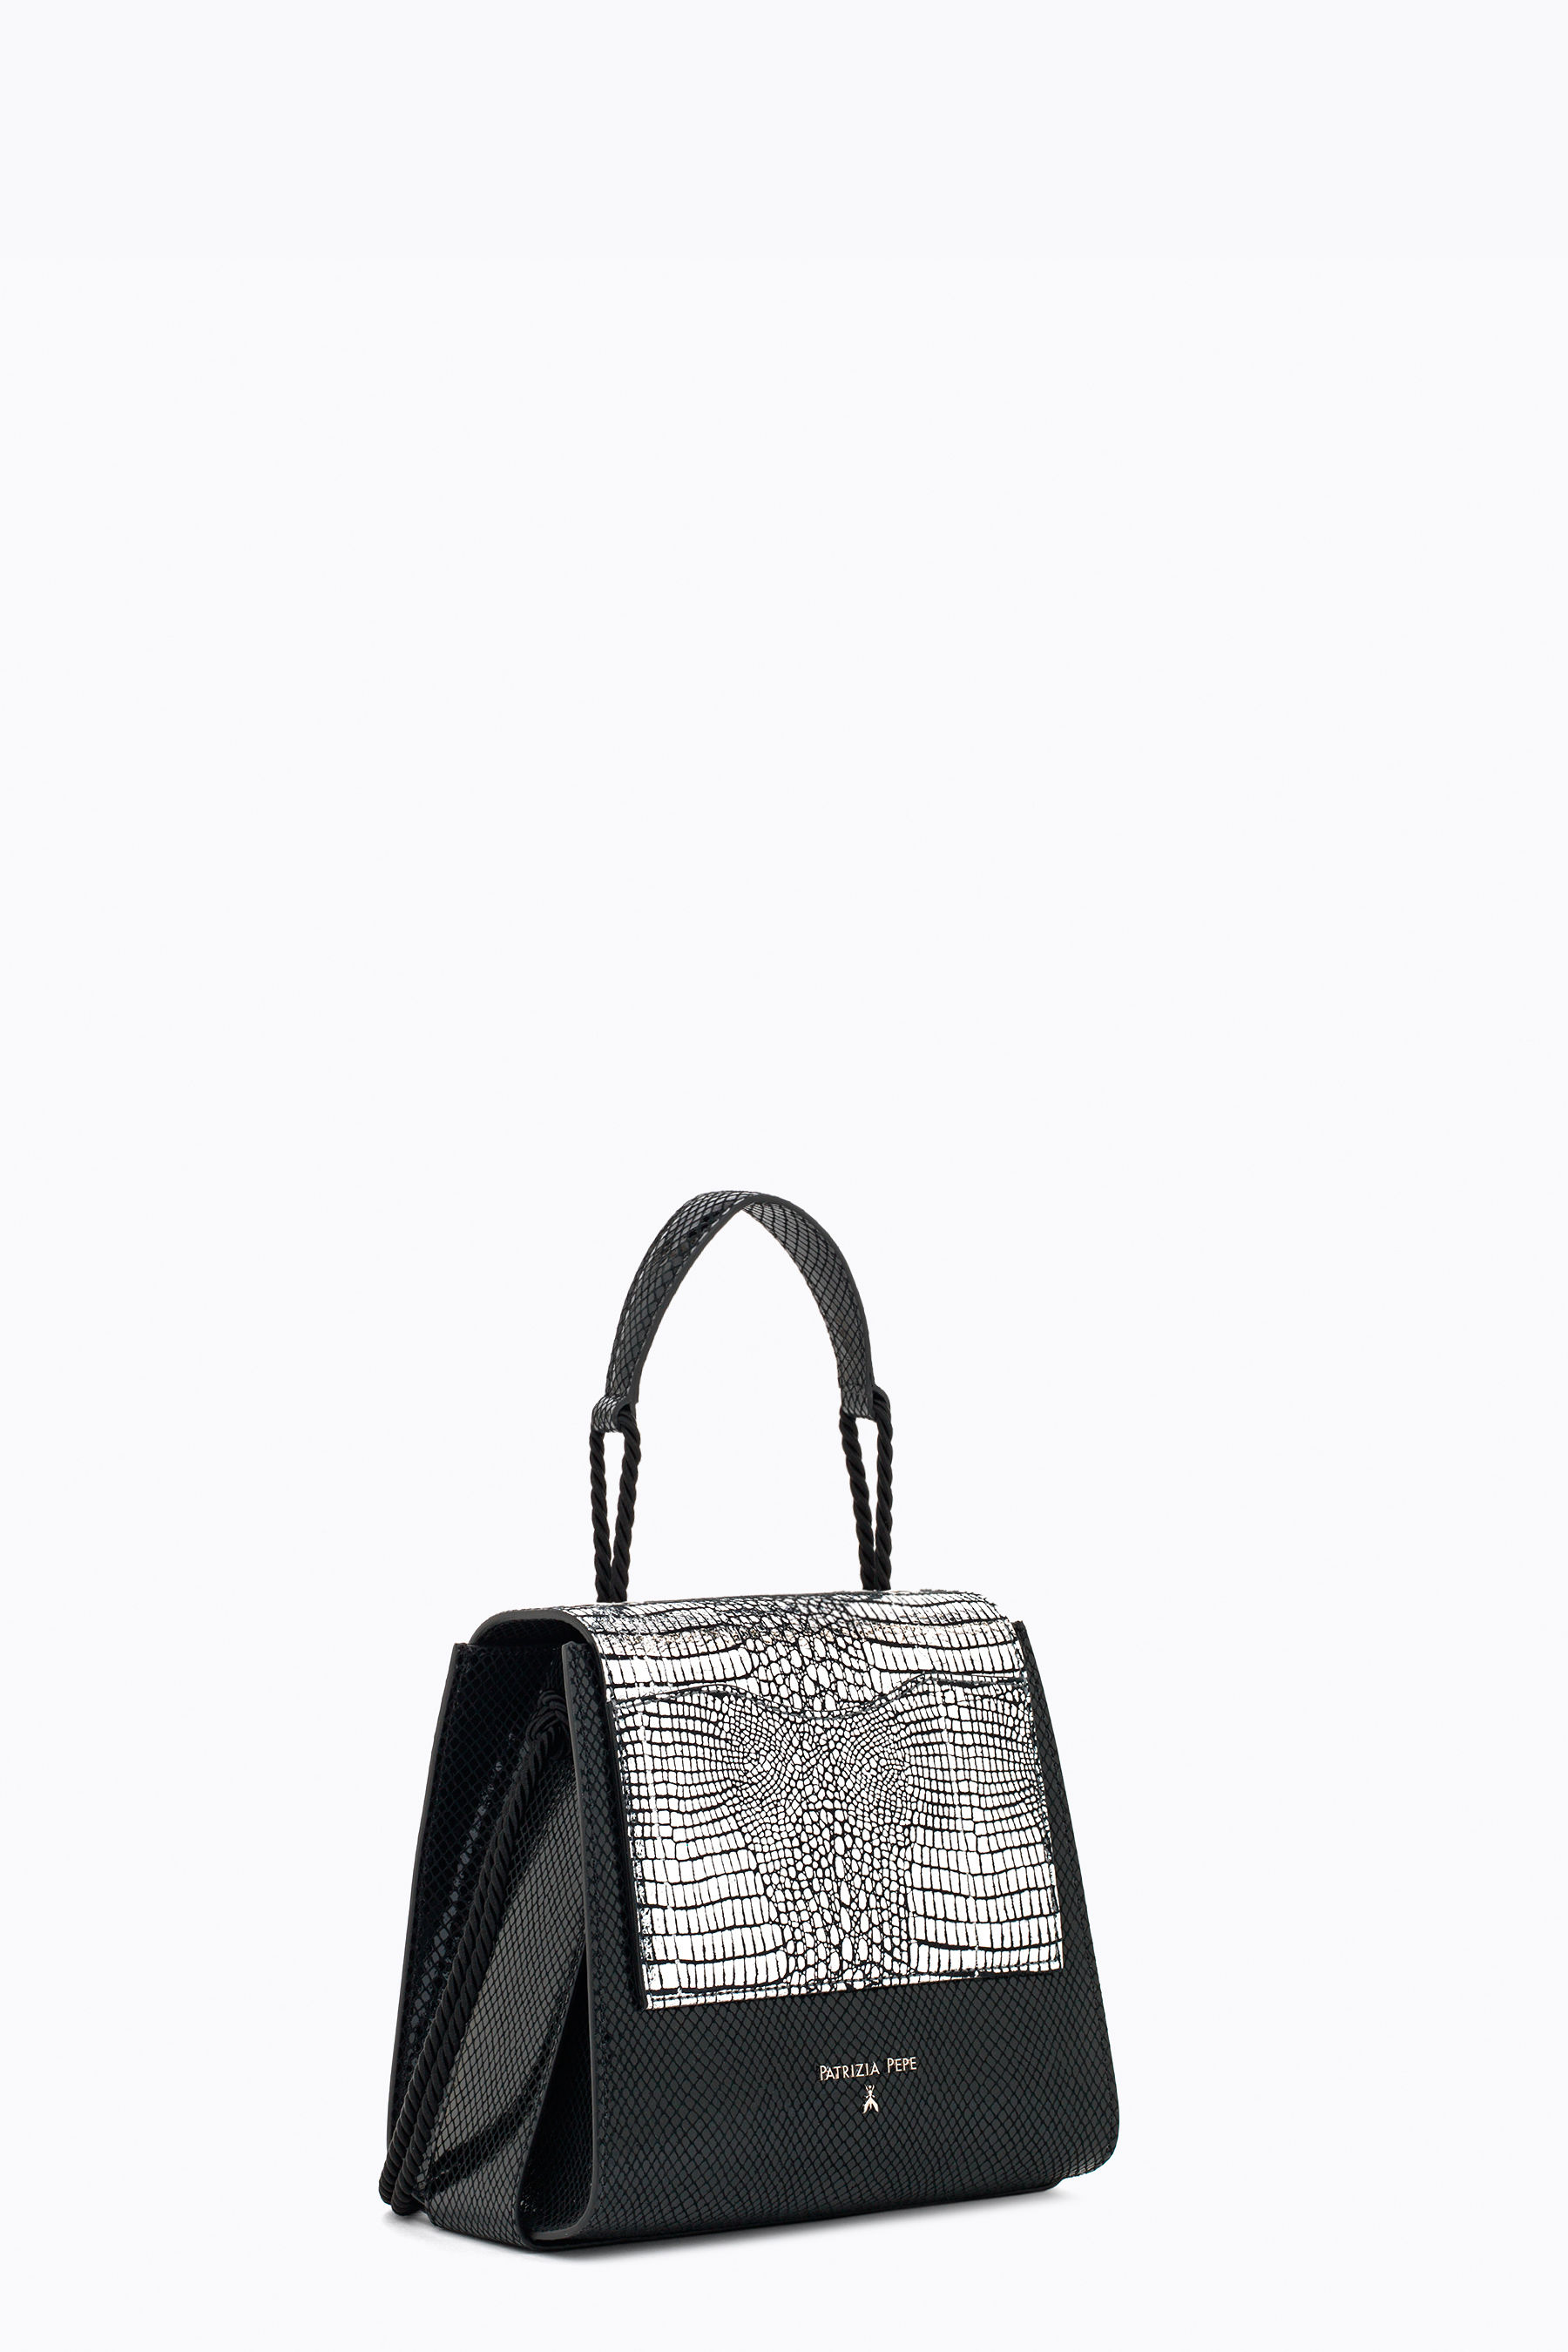 Bag in python print leather